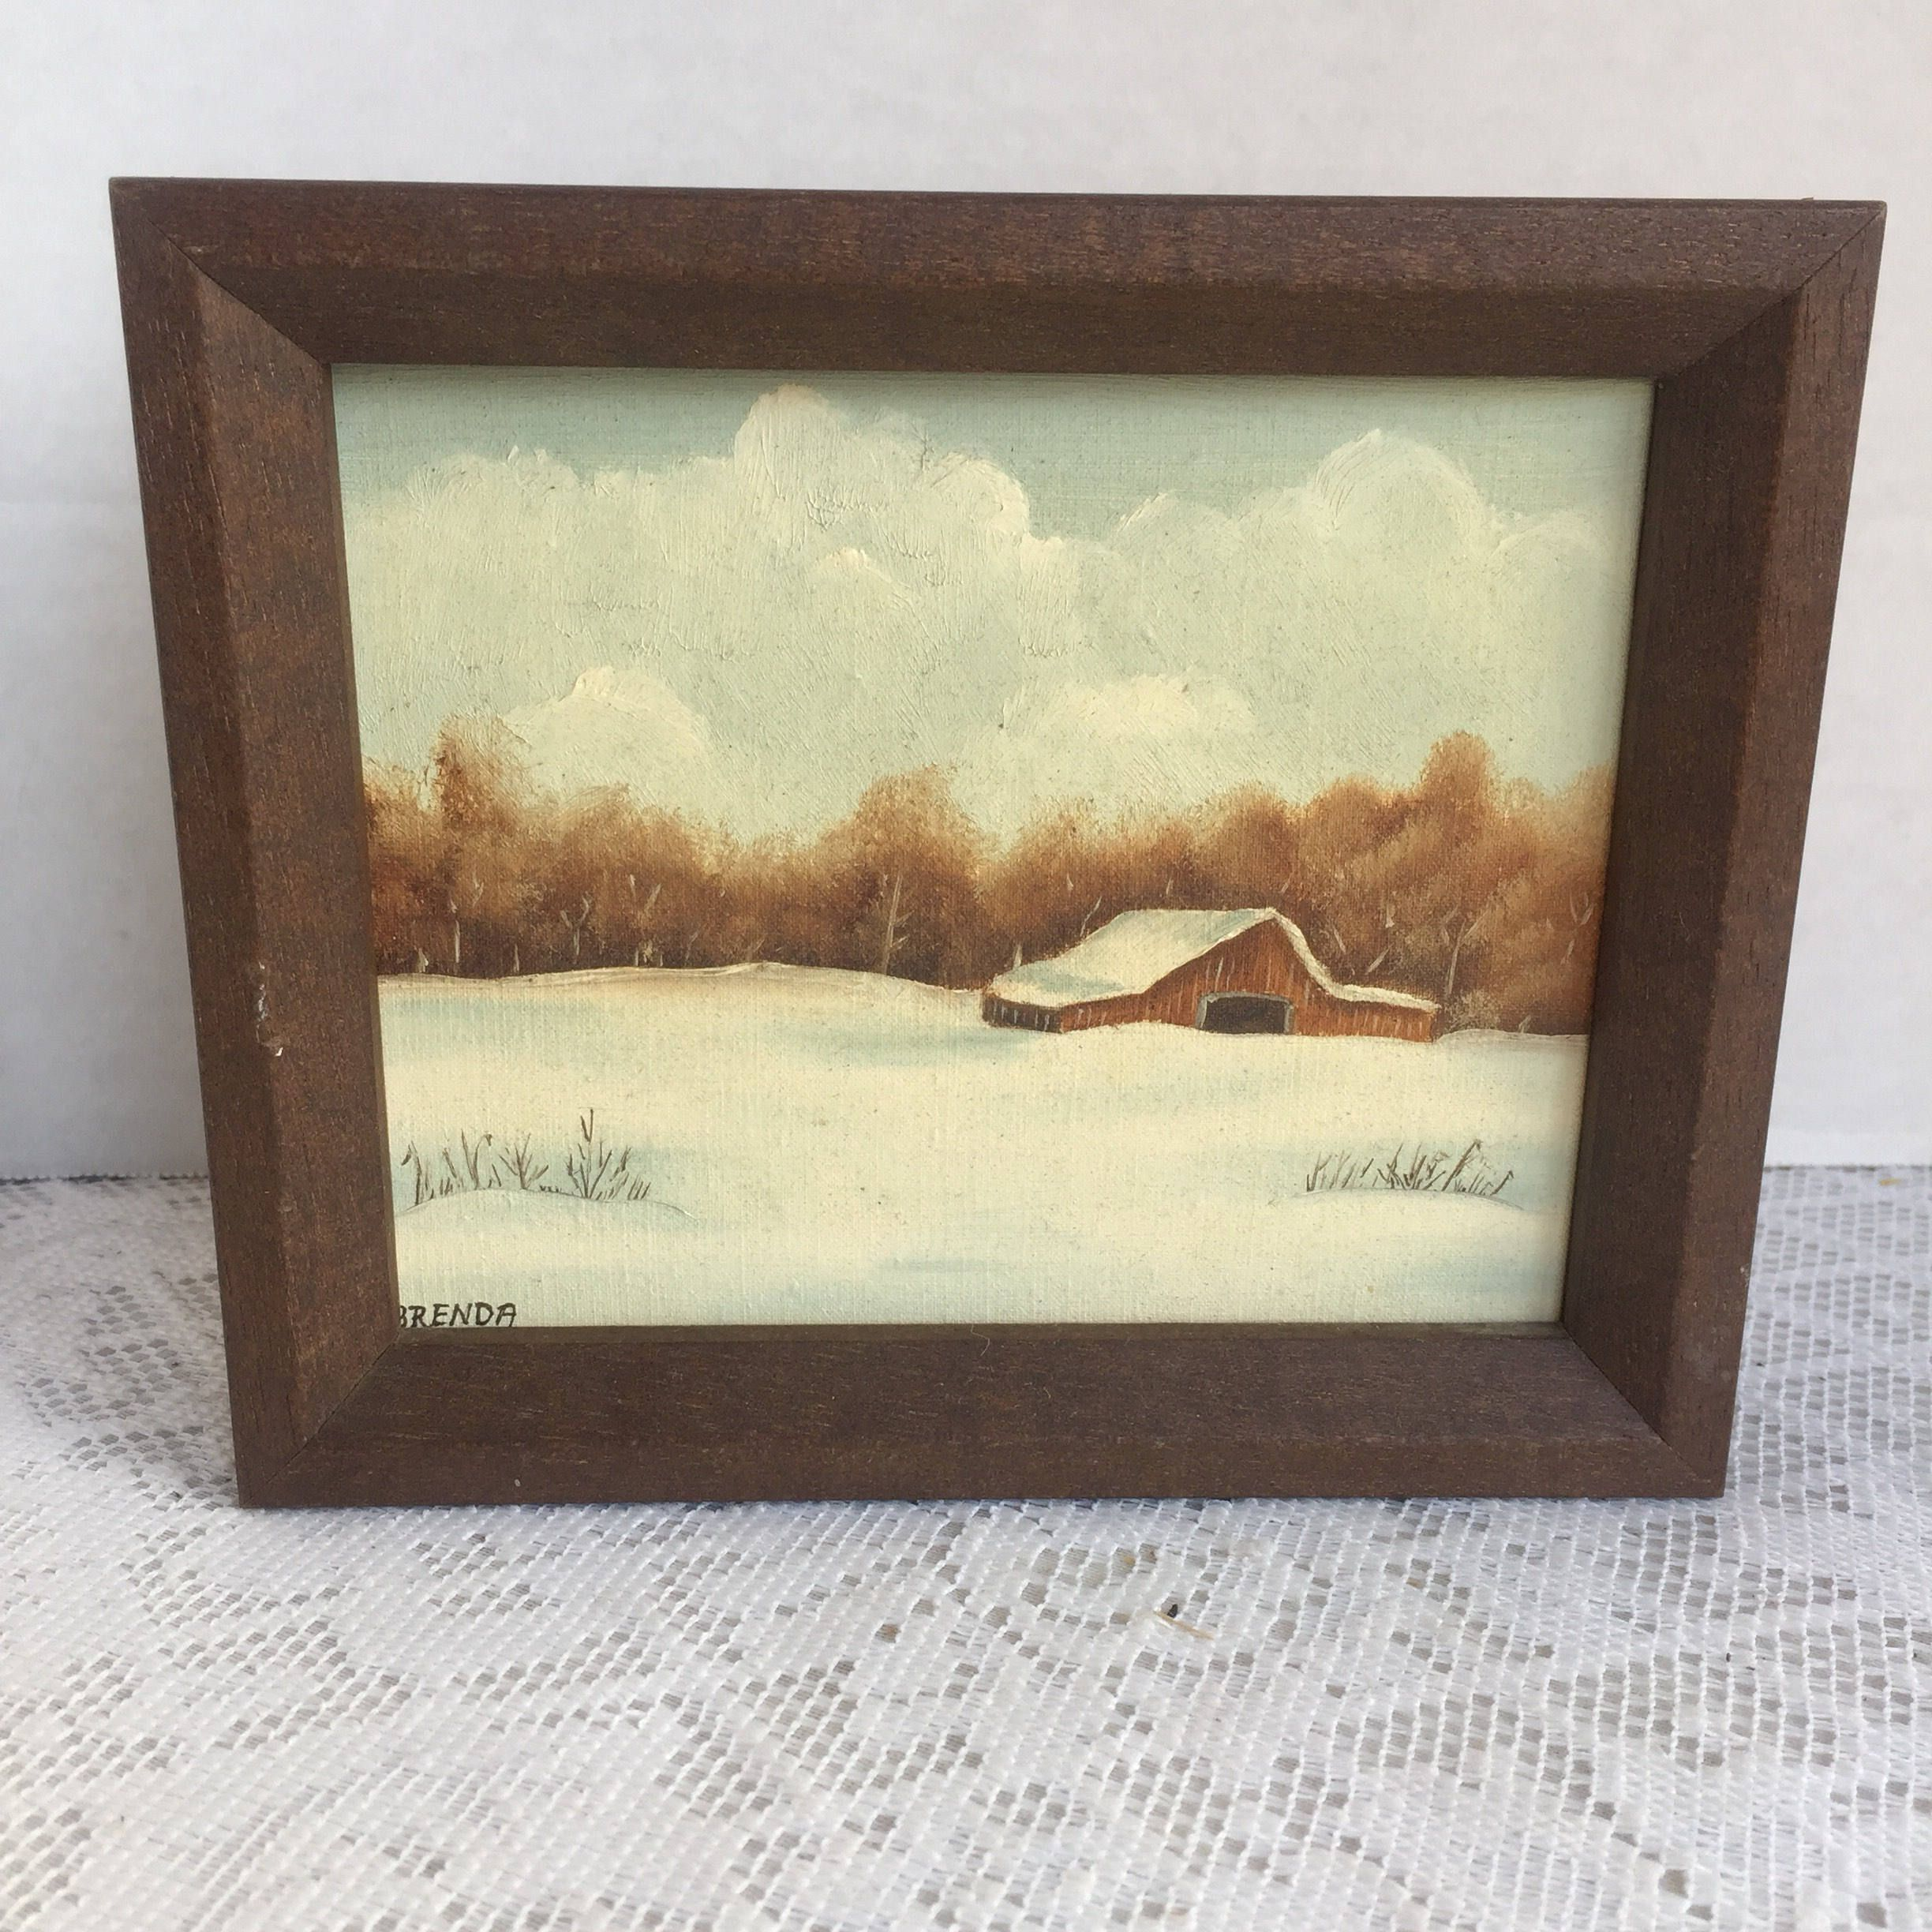 Vintage Wooden Frame with Art / 4 X 5 Wood Frame with Snowy Scene ...